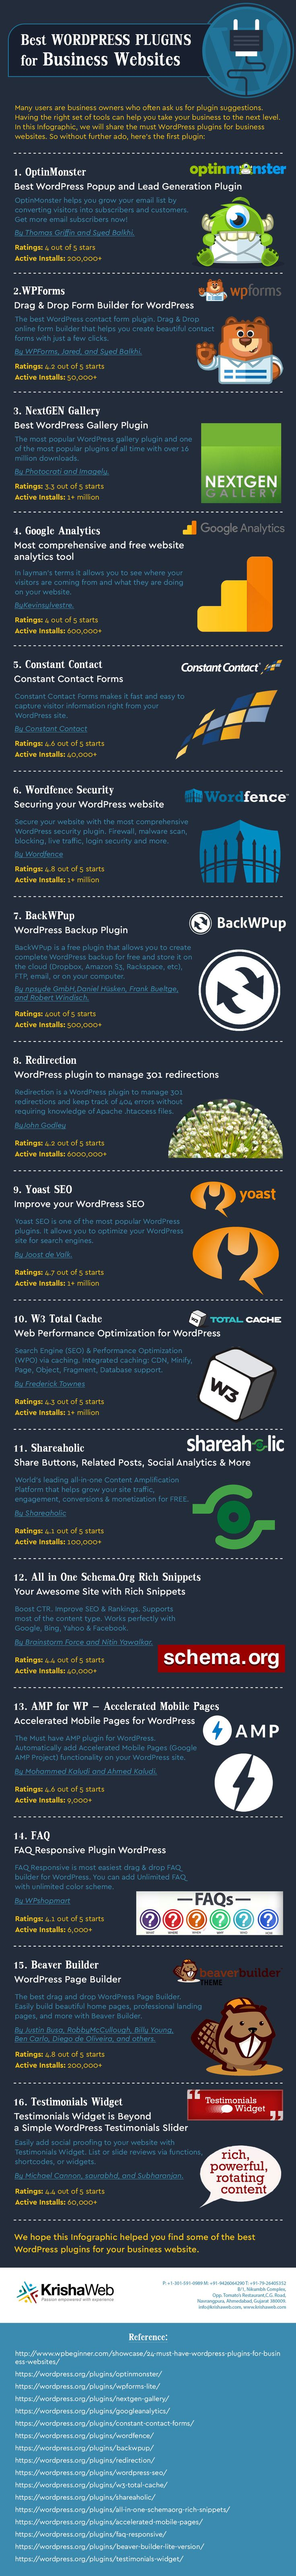 Many users are business owners who often ask us for plugin suggestions. Having the right set of tools can help you take your business to the next level. In this Infographic, we will share the must WordPress plugins for business websites. So without further ado, here's the first plugin: